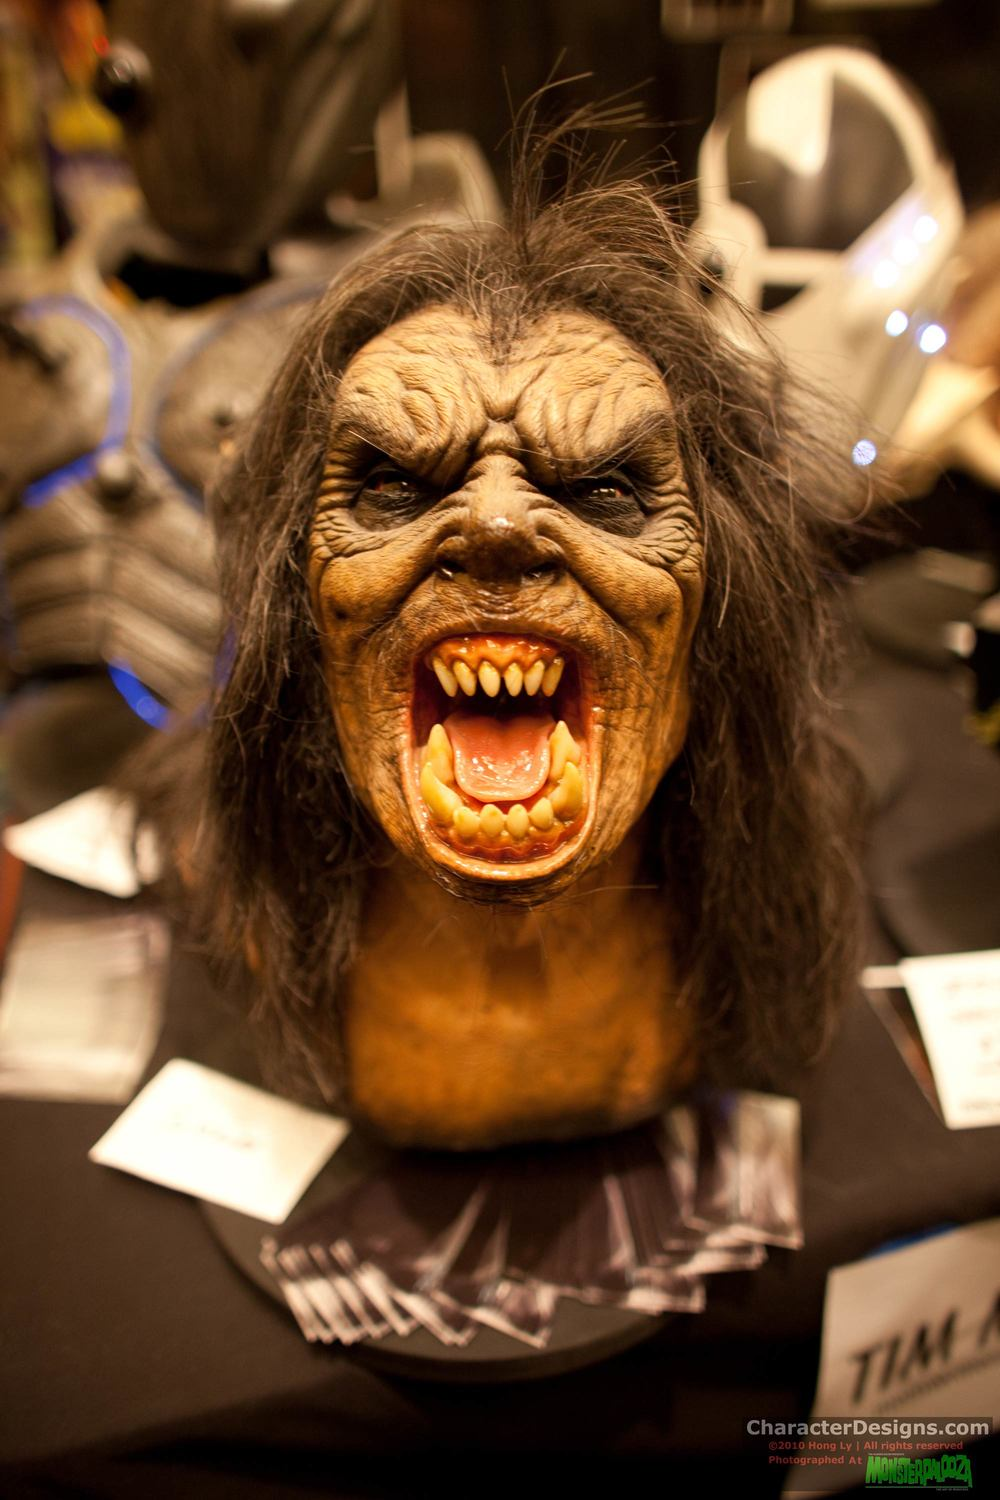 2010_Monsterpalooza_098.jpg